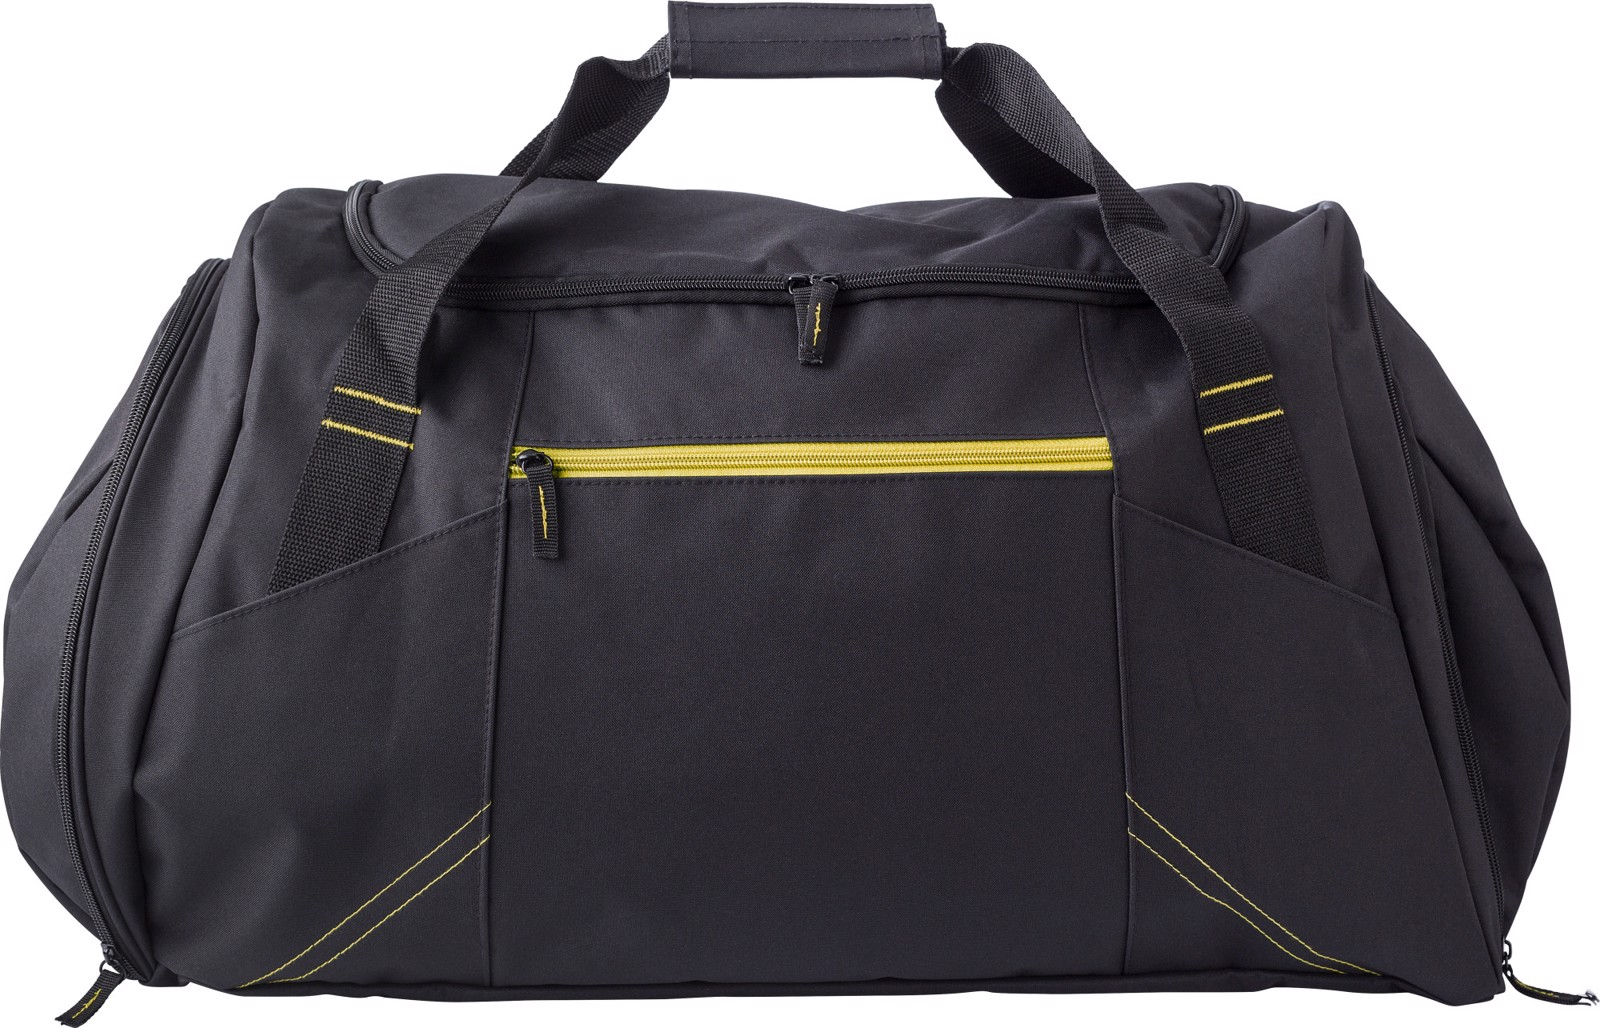 Polyester (300D) sports bag - Yellow